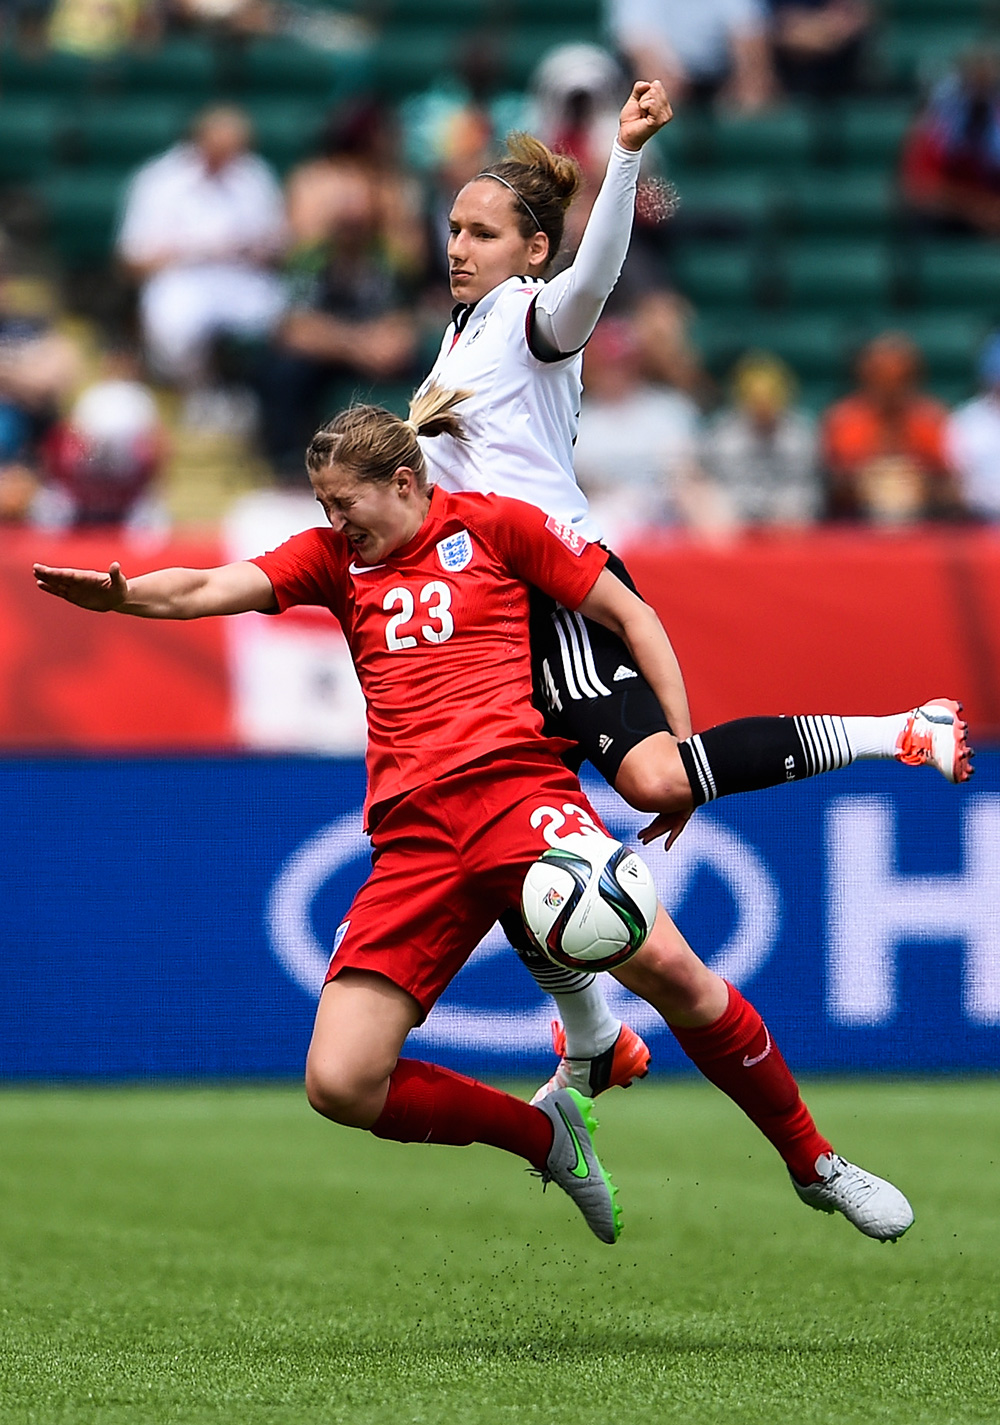 Women's World Cup, England vs. Germany: Third-place match features first-rate teams